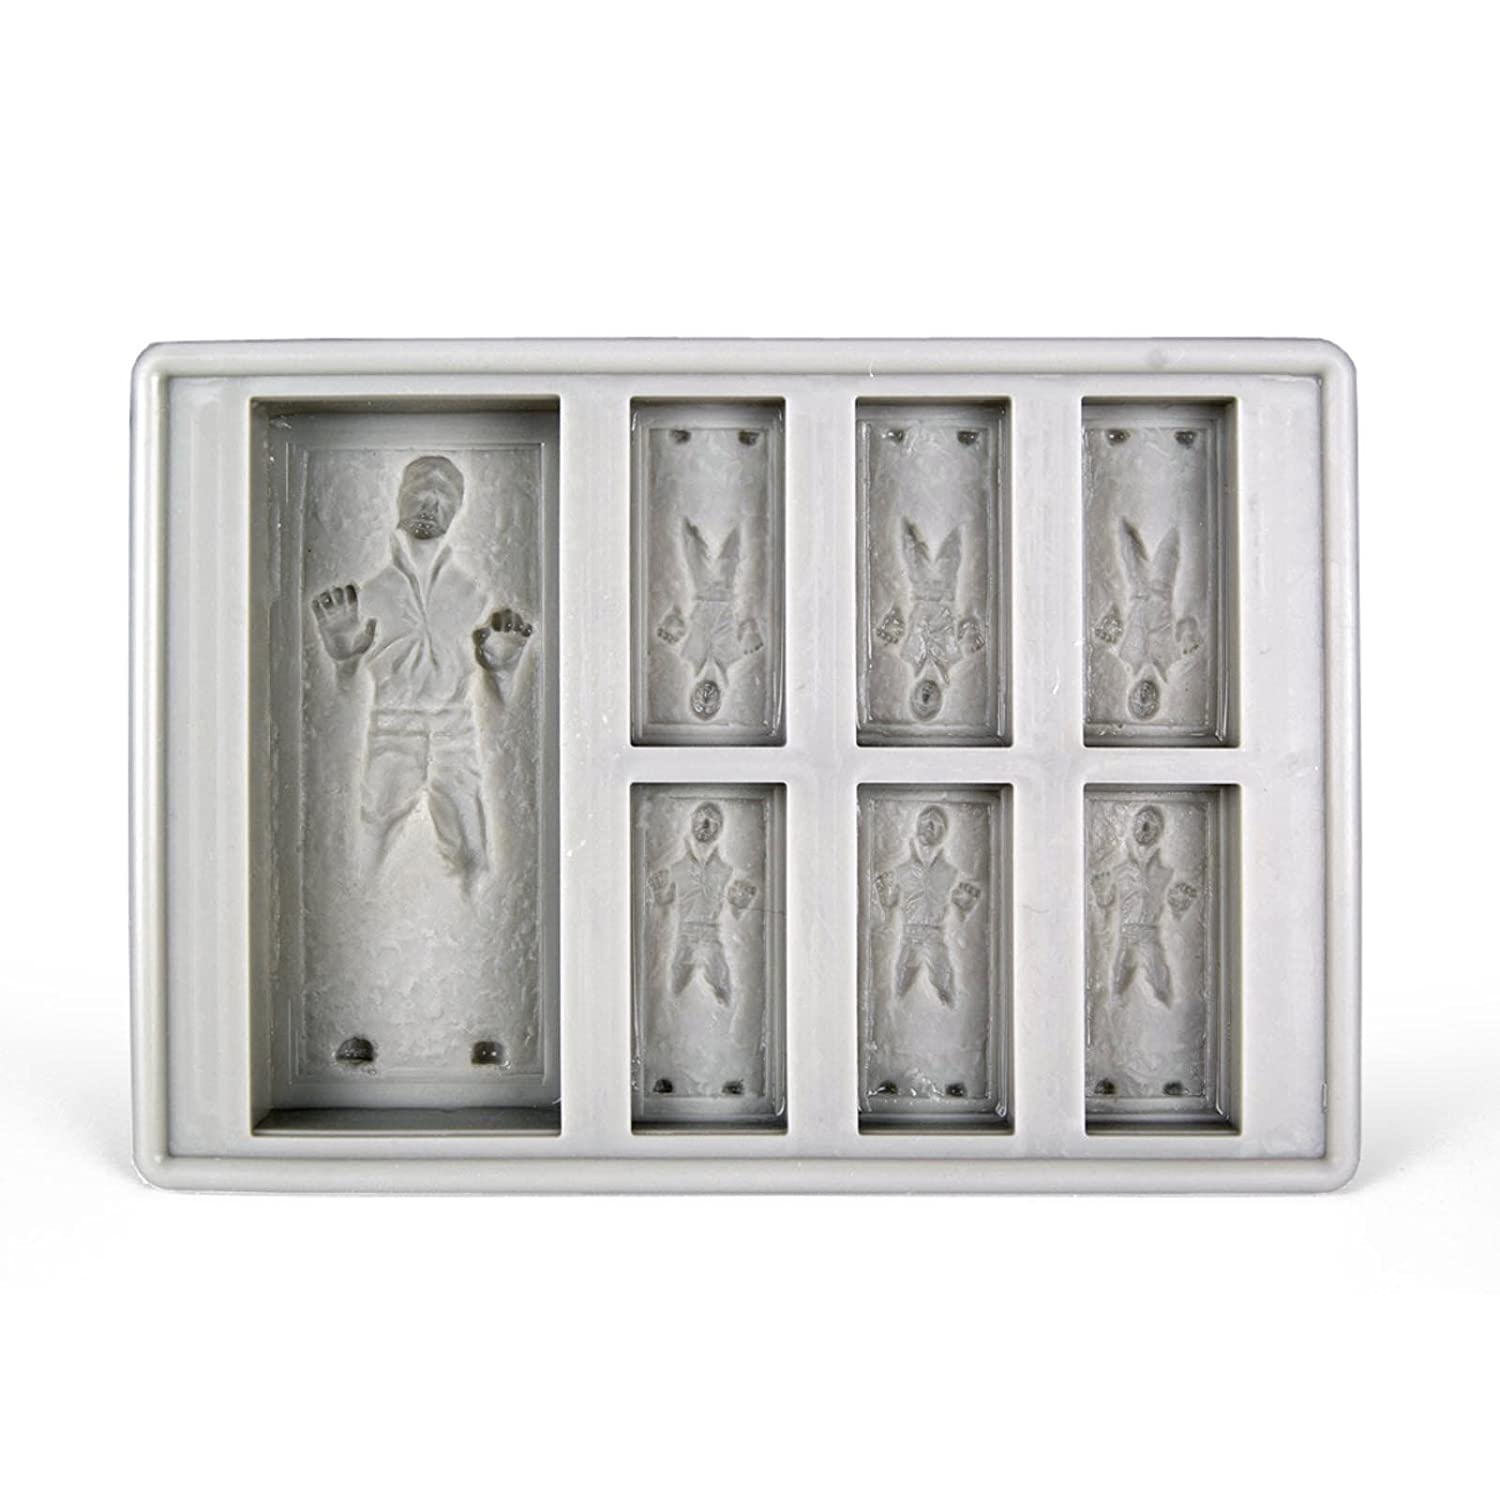 Star Wars Silicone Tray Han Solo In Carbonite